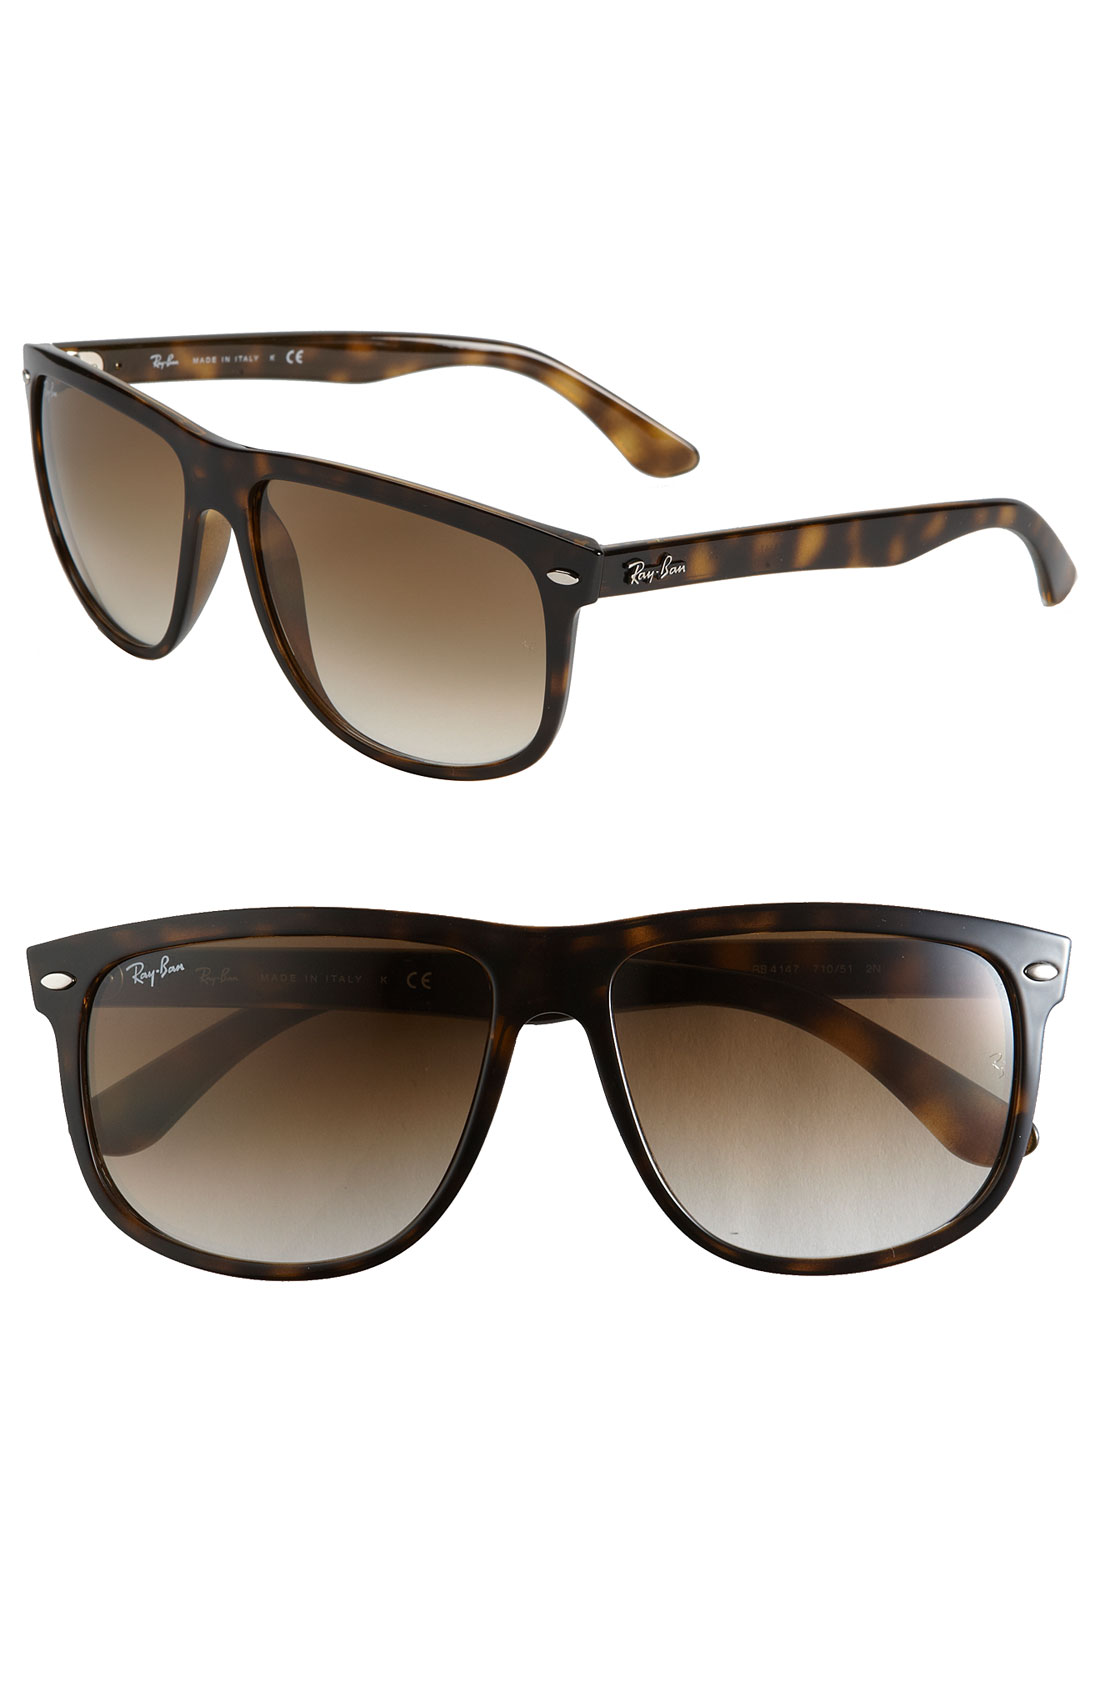 ca7ad55f663f5 ray ban sunglasses 2011 collection   ALPHATIER